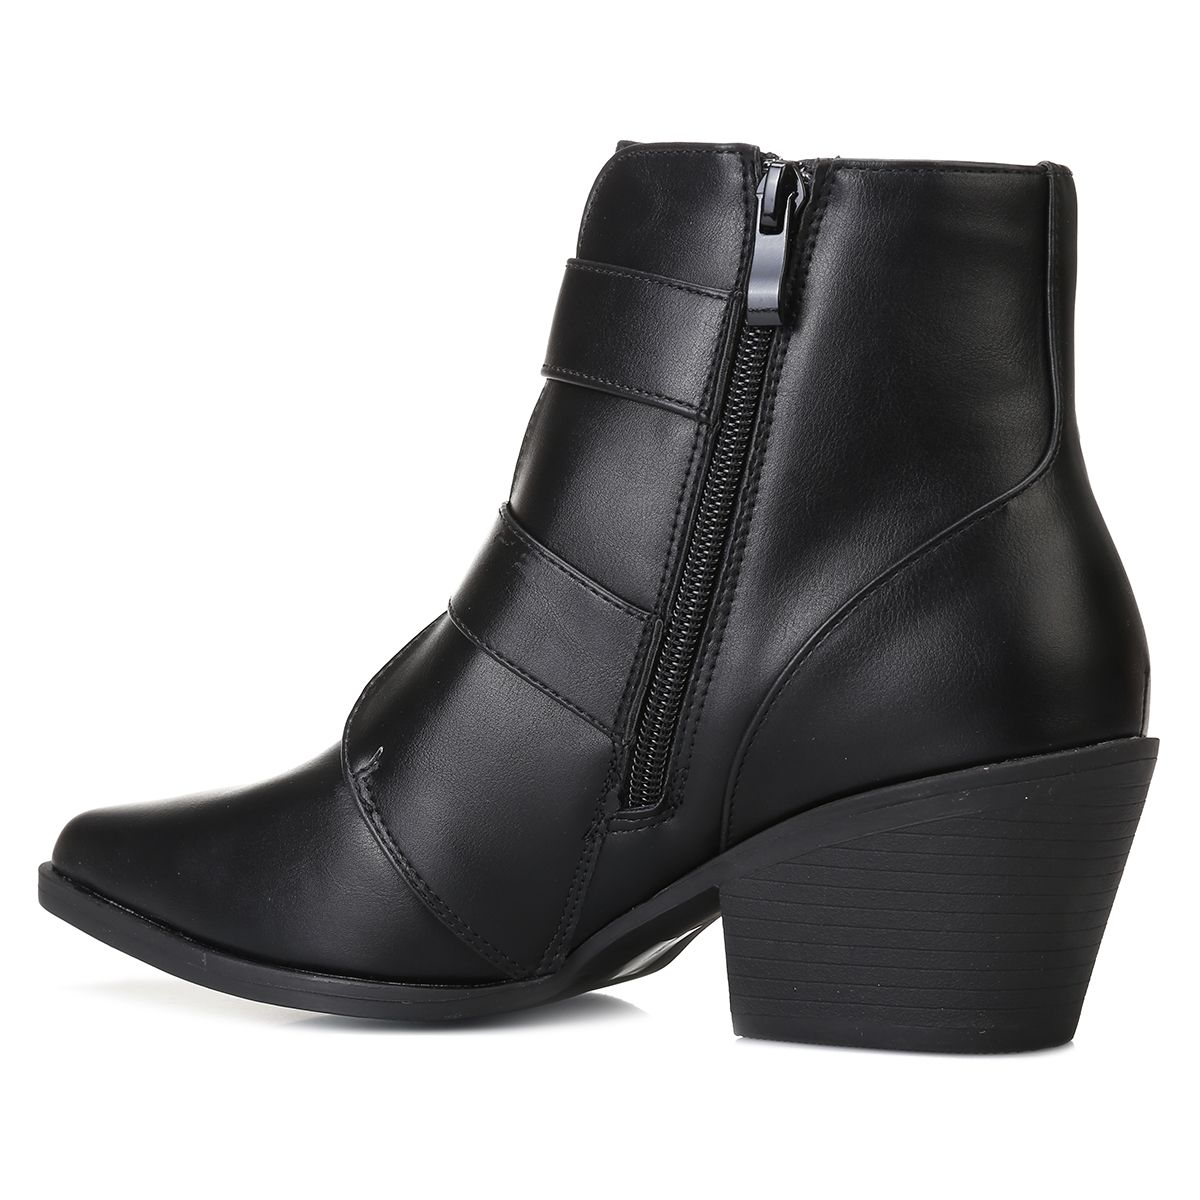 Bottines noires en simili cuir à bout pointu et brides